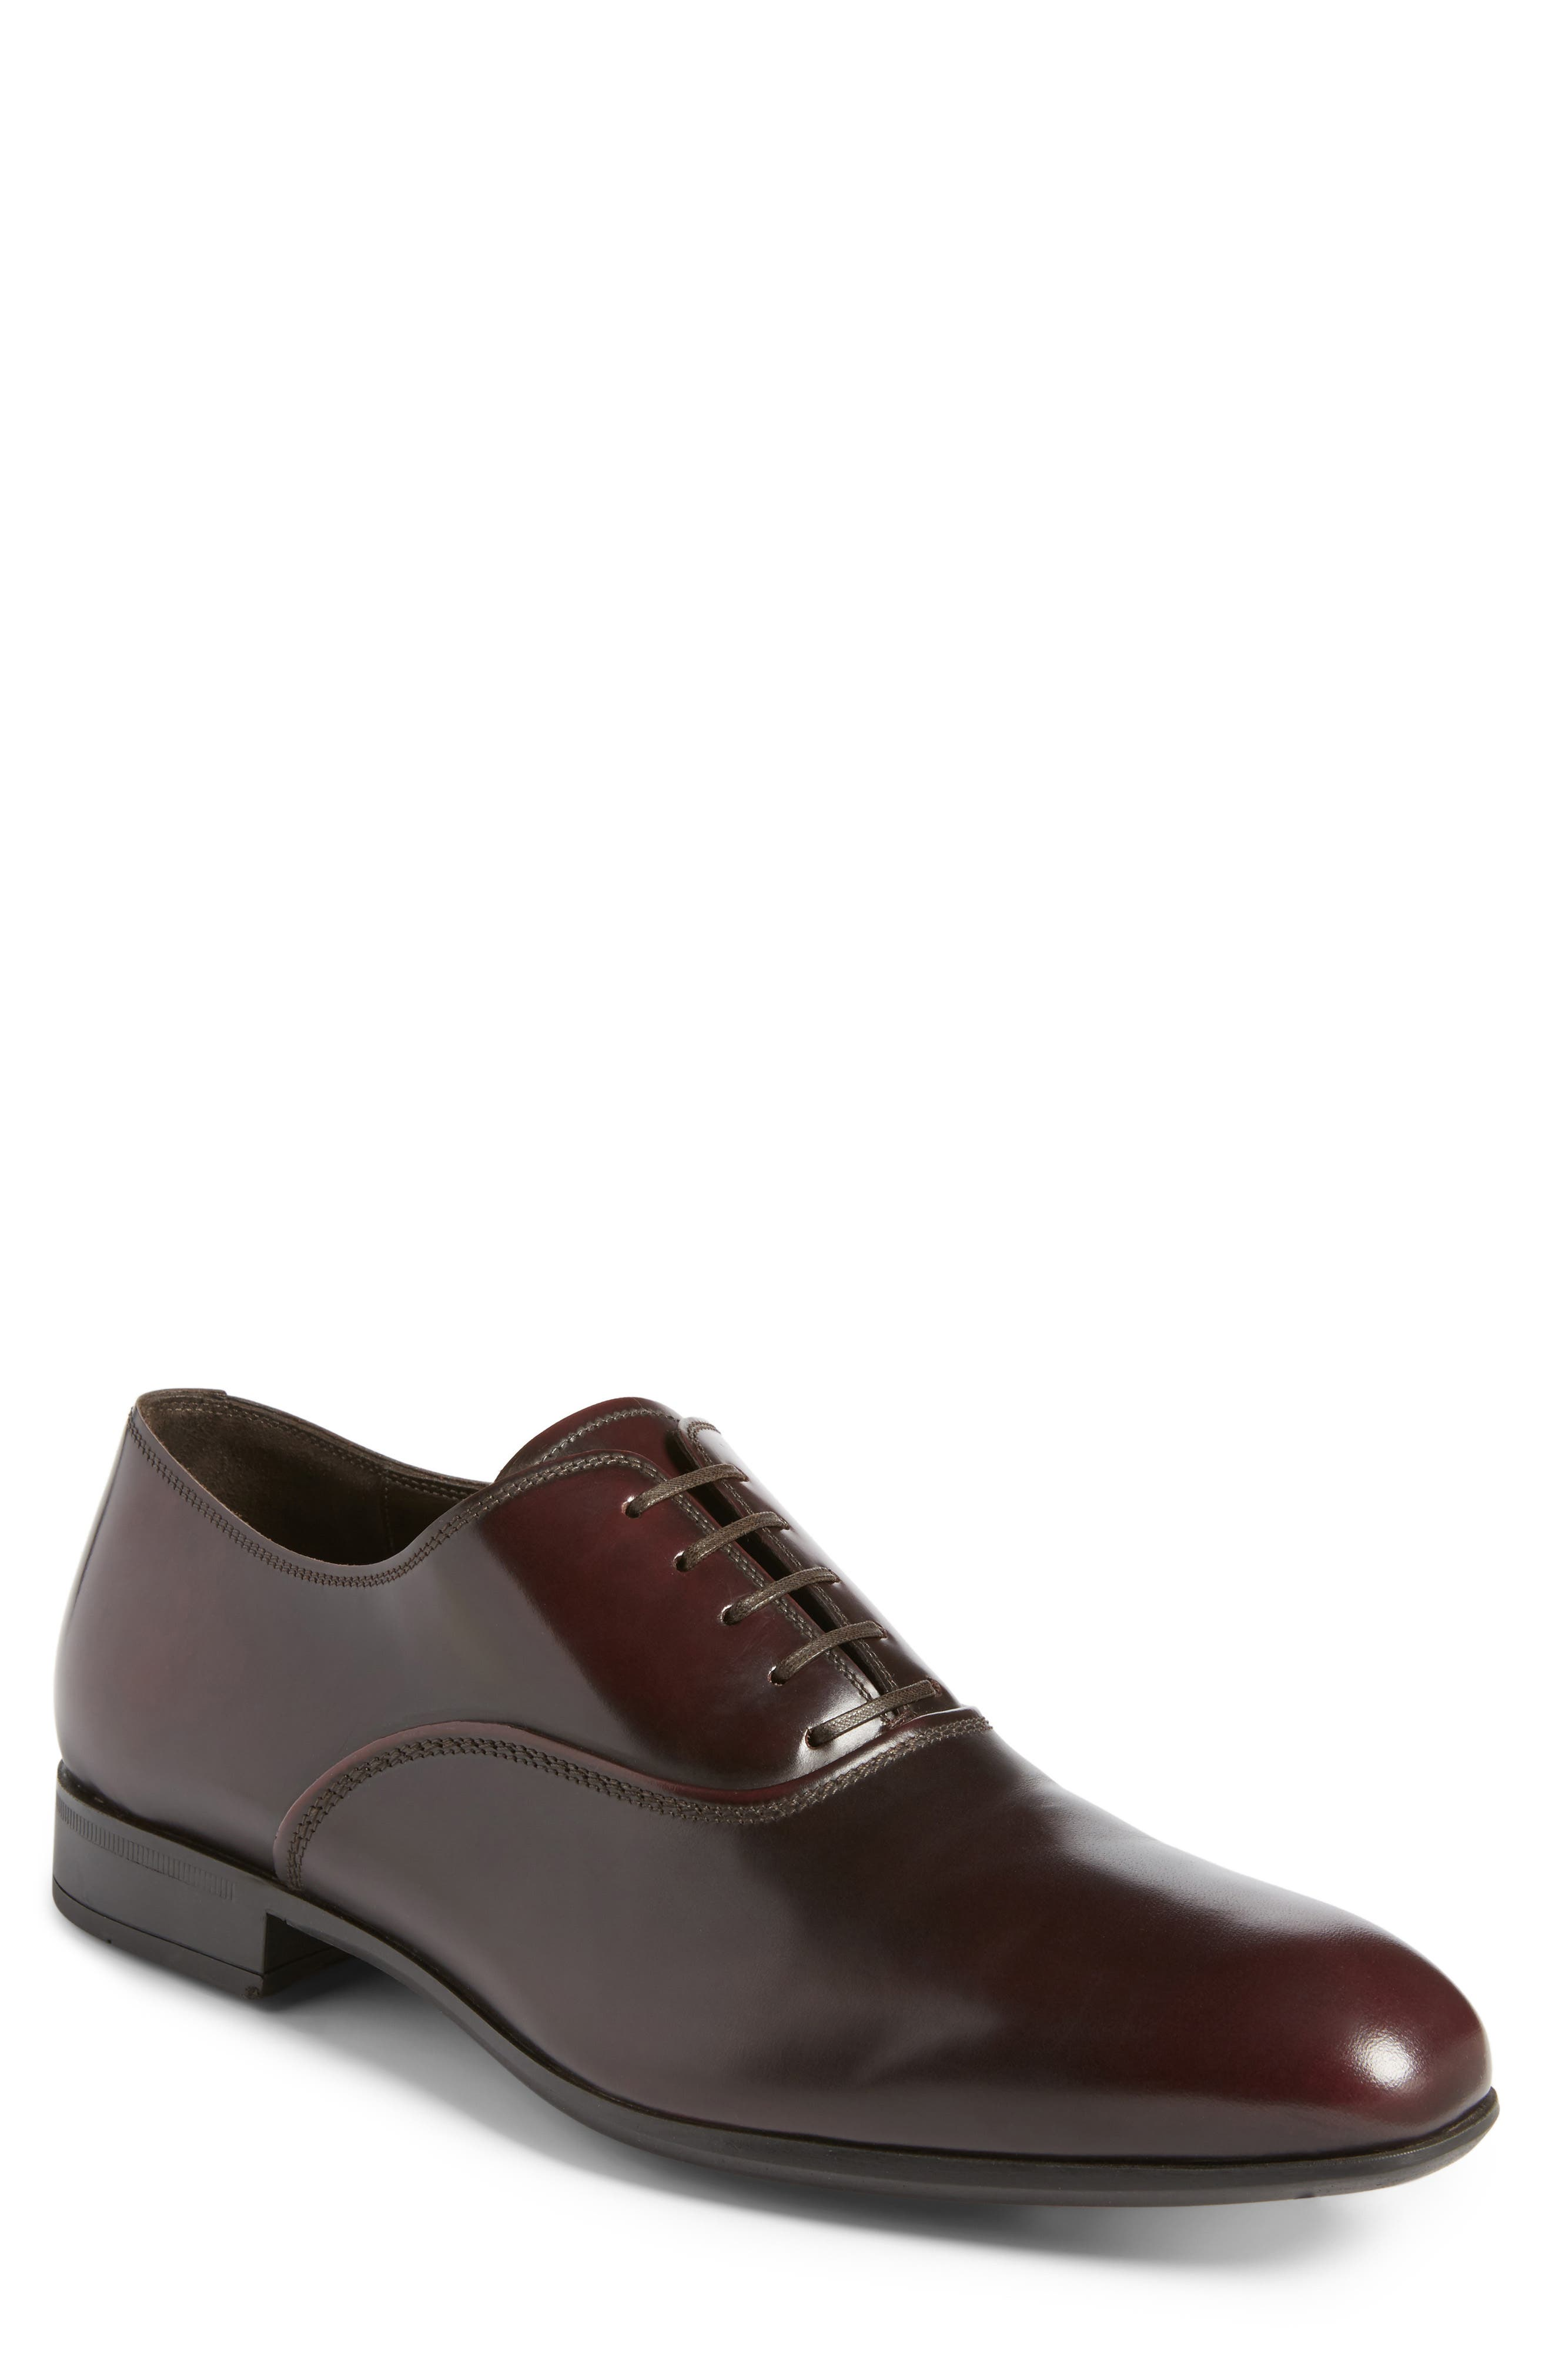 Salvatore Ferragamo Dunn Derby Plain Toe Oxford (Men)